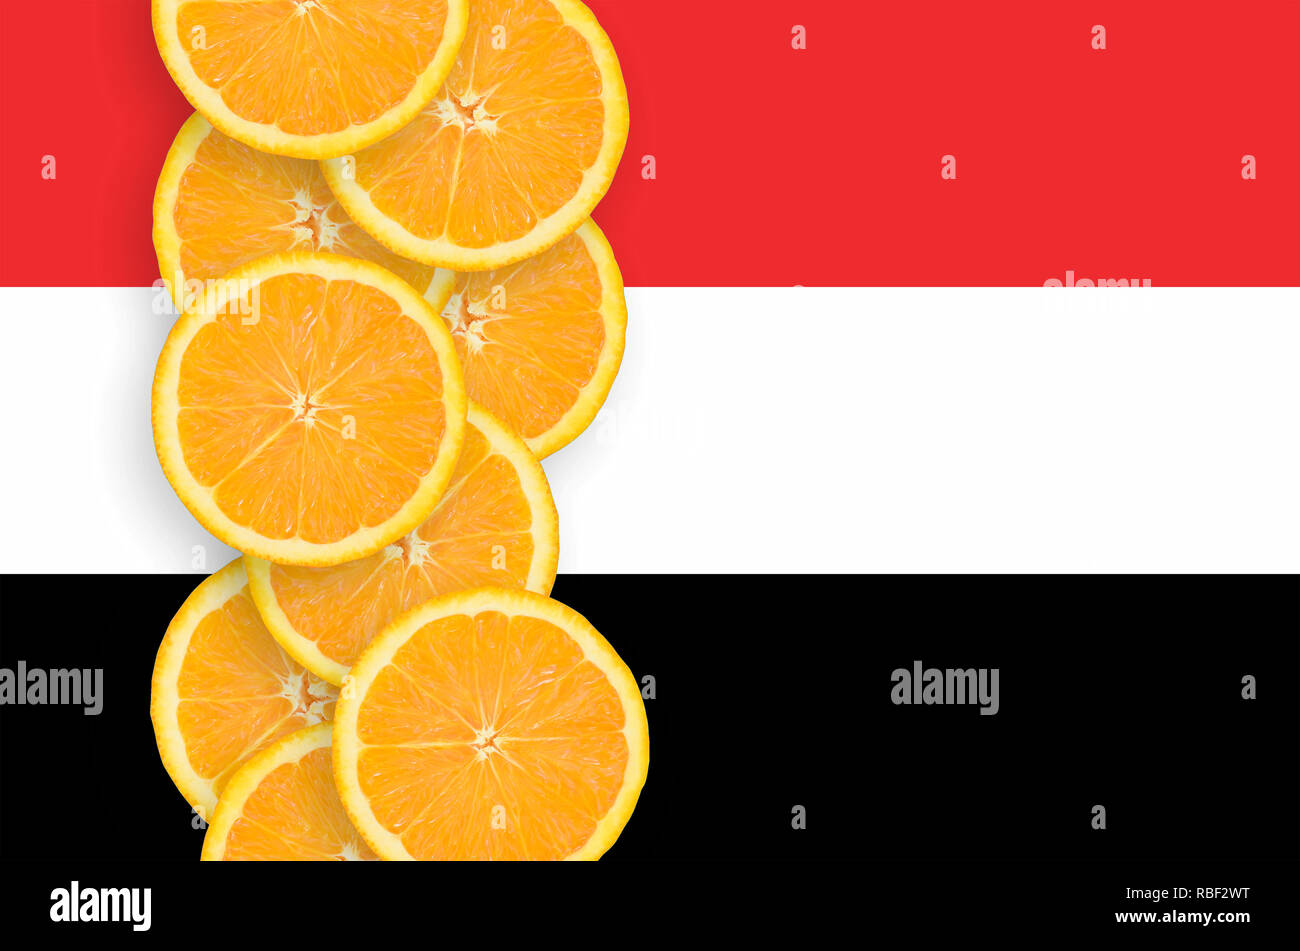 Yemen flag and vertical row of orange citrus fruit slices. Concept of growing as well as import and export of citrus fruits - Stock Image